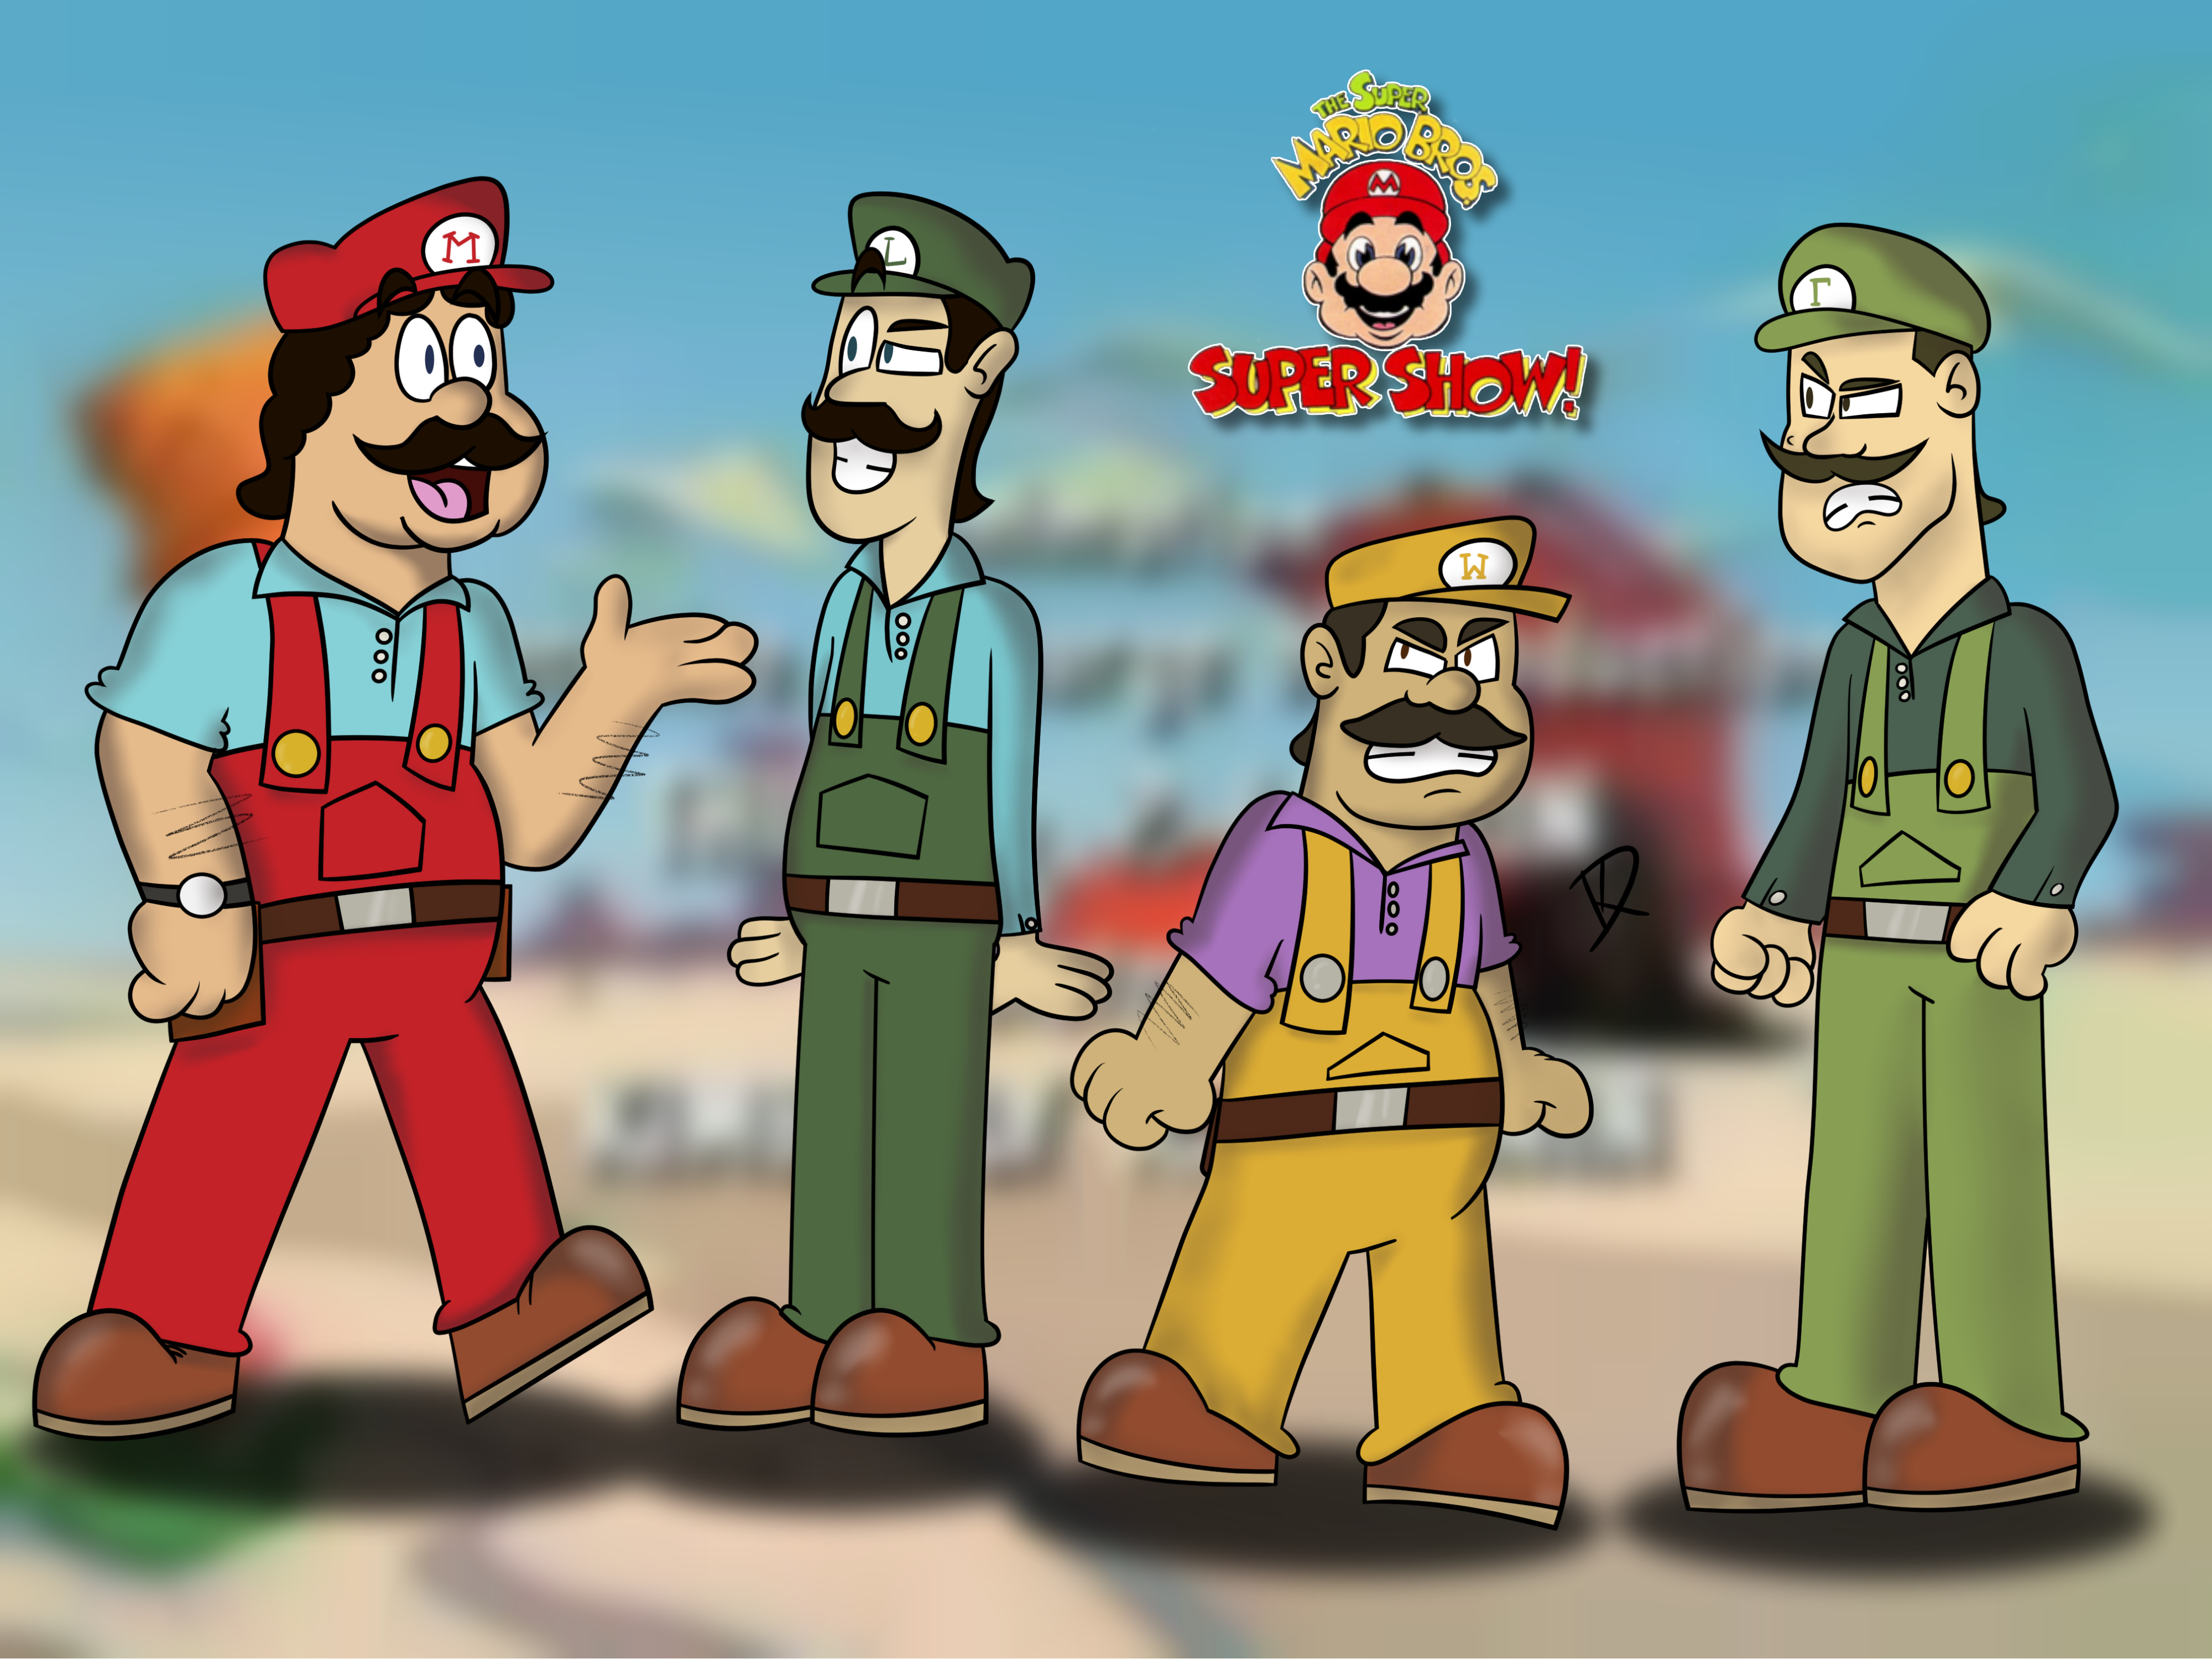 Super Mario Brothers Super Show Live Action By Itsamewario48 On